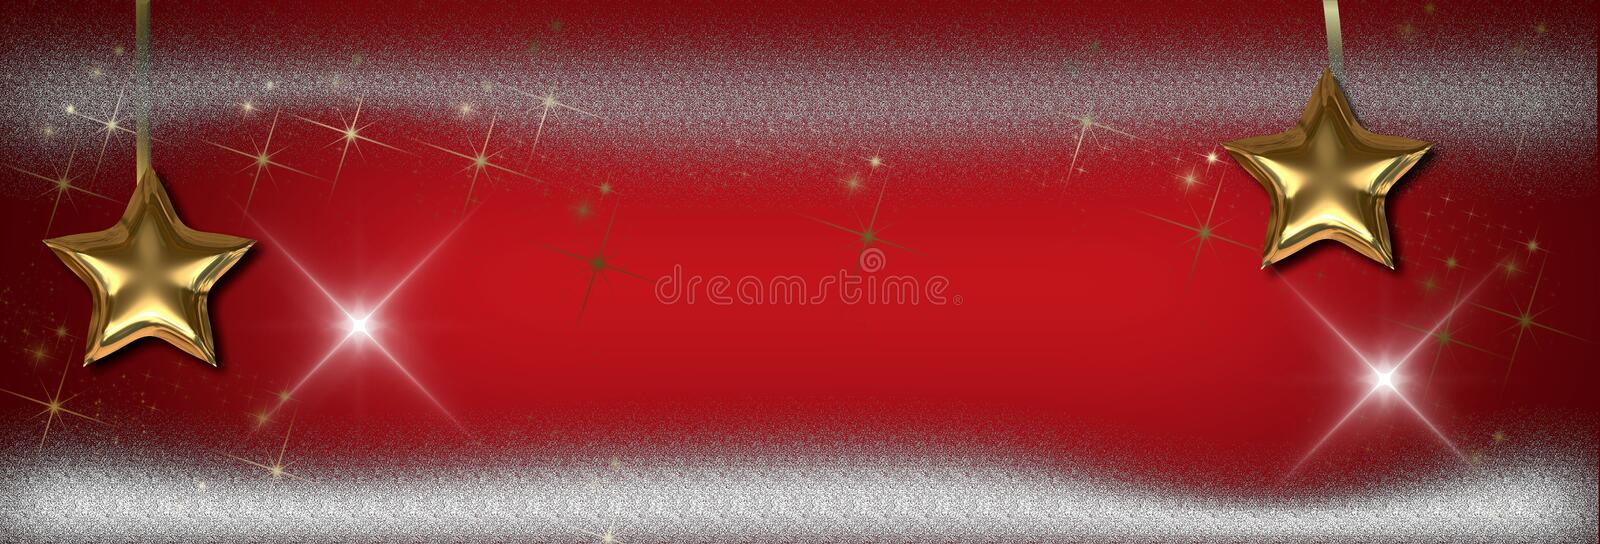 Christmas stars banner, background royalty free stock photos